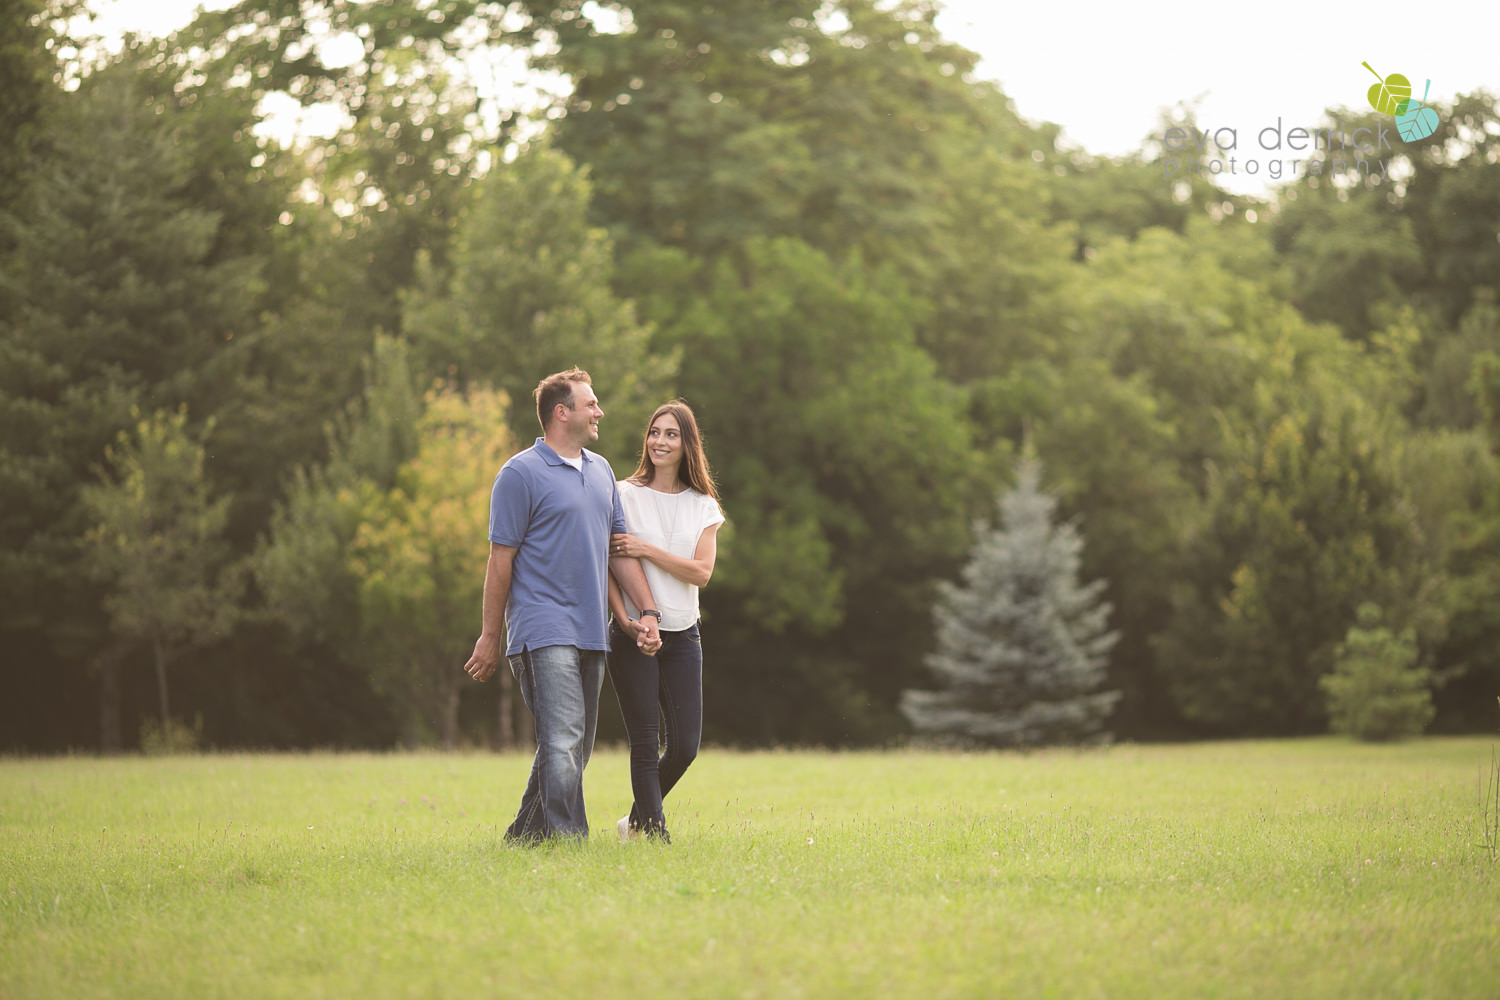 Niagara-Engagement-Session-photography-by-Eva-Derrick-Photography-007.JPG